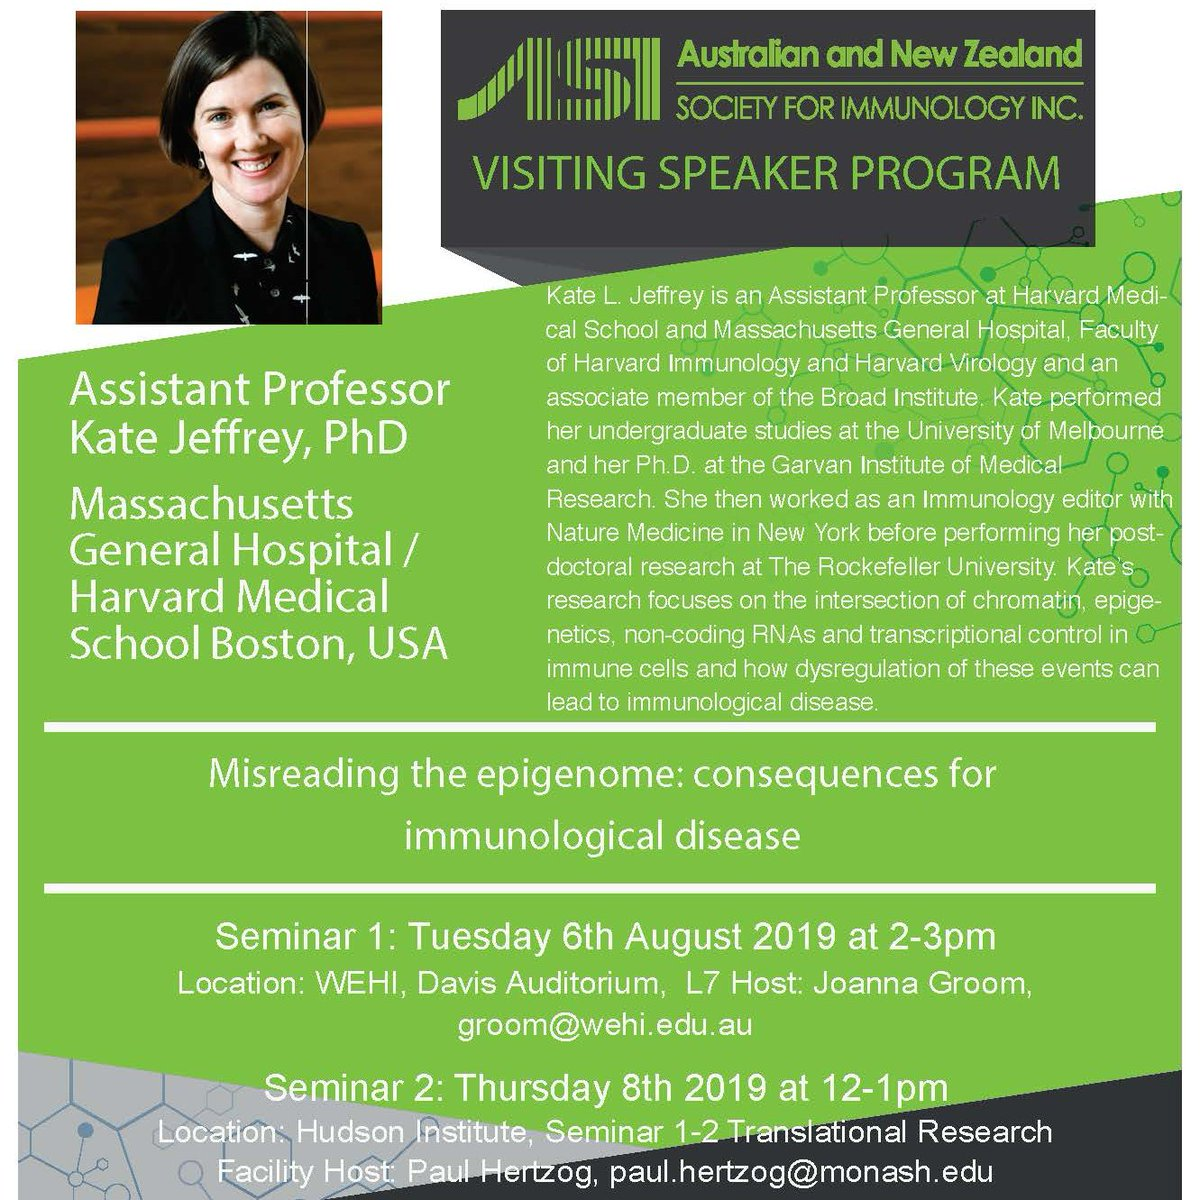 Australian and New Zealand Society for Immunology (@ASImmunology